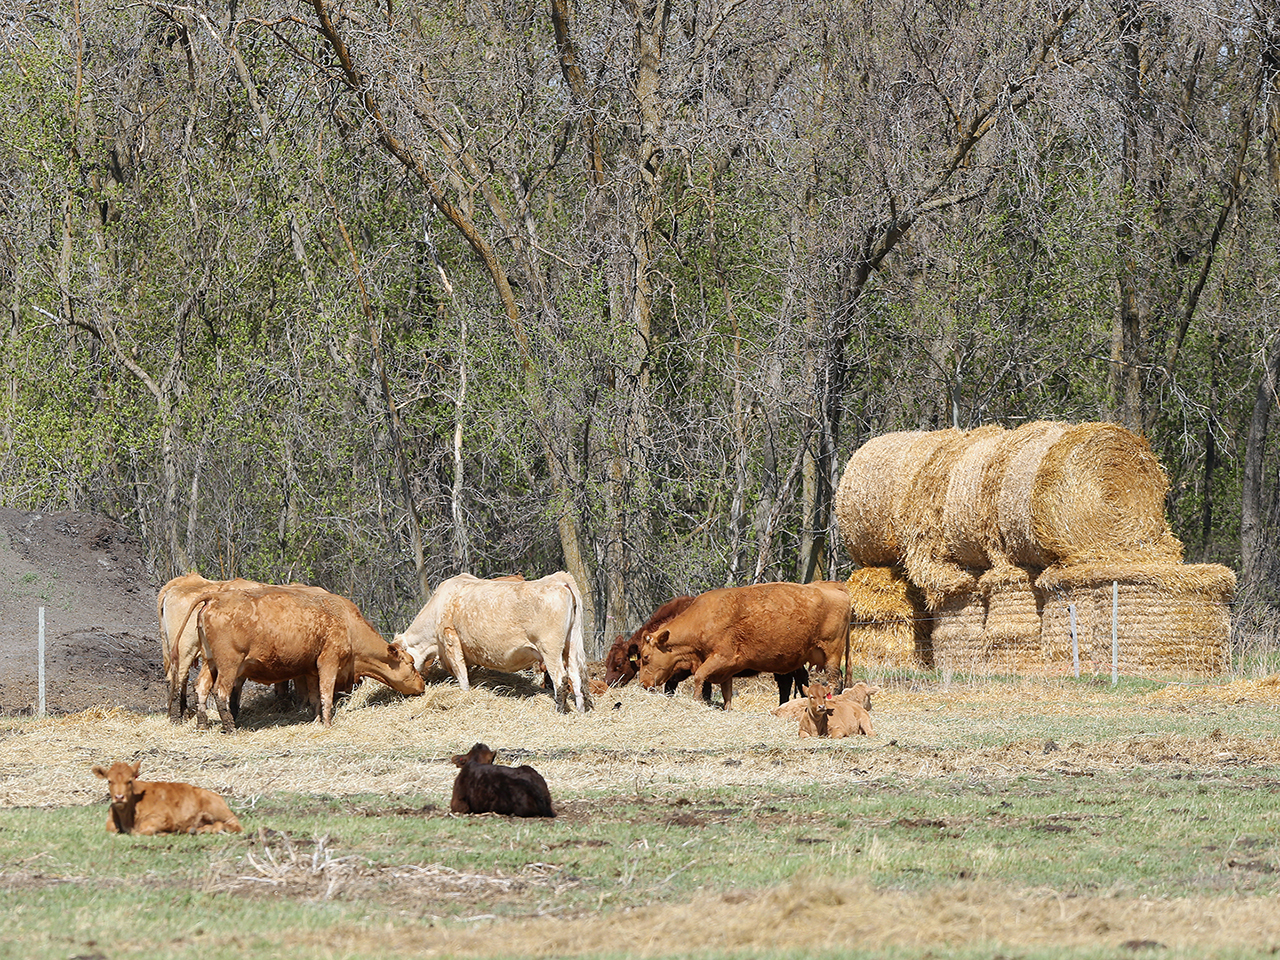 Five cows feed on hay while two cows rest in the foreground